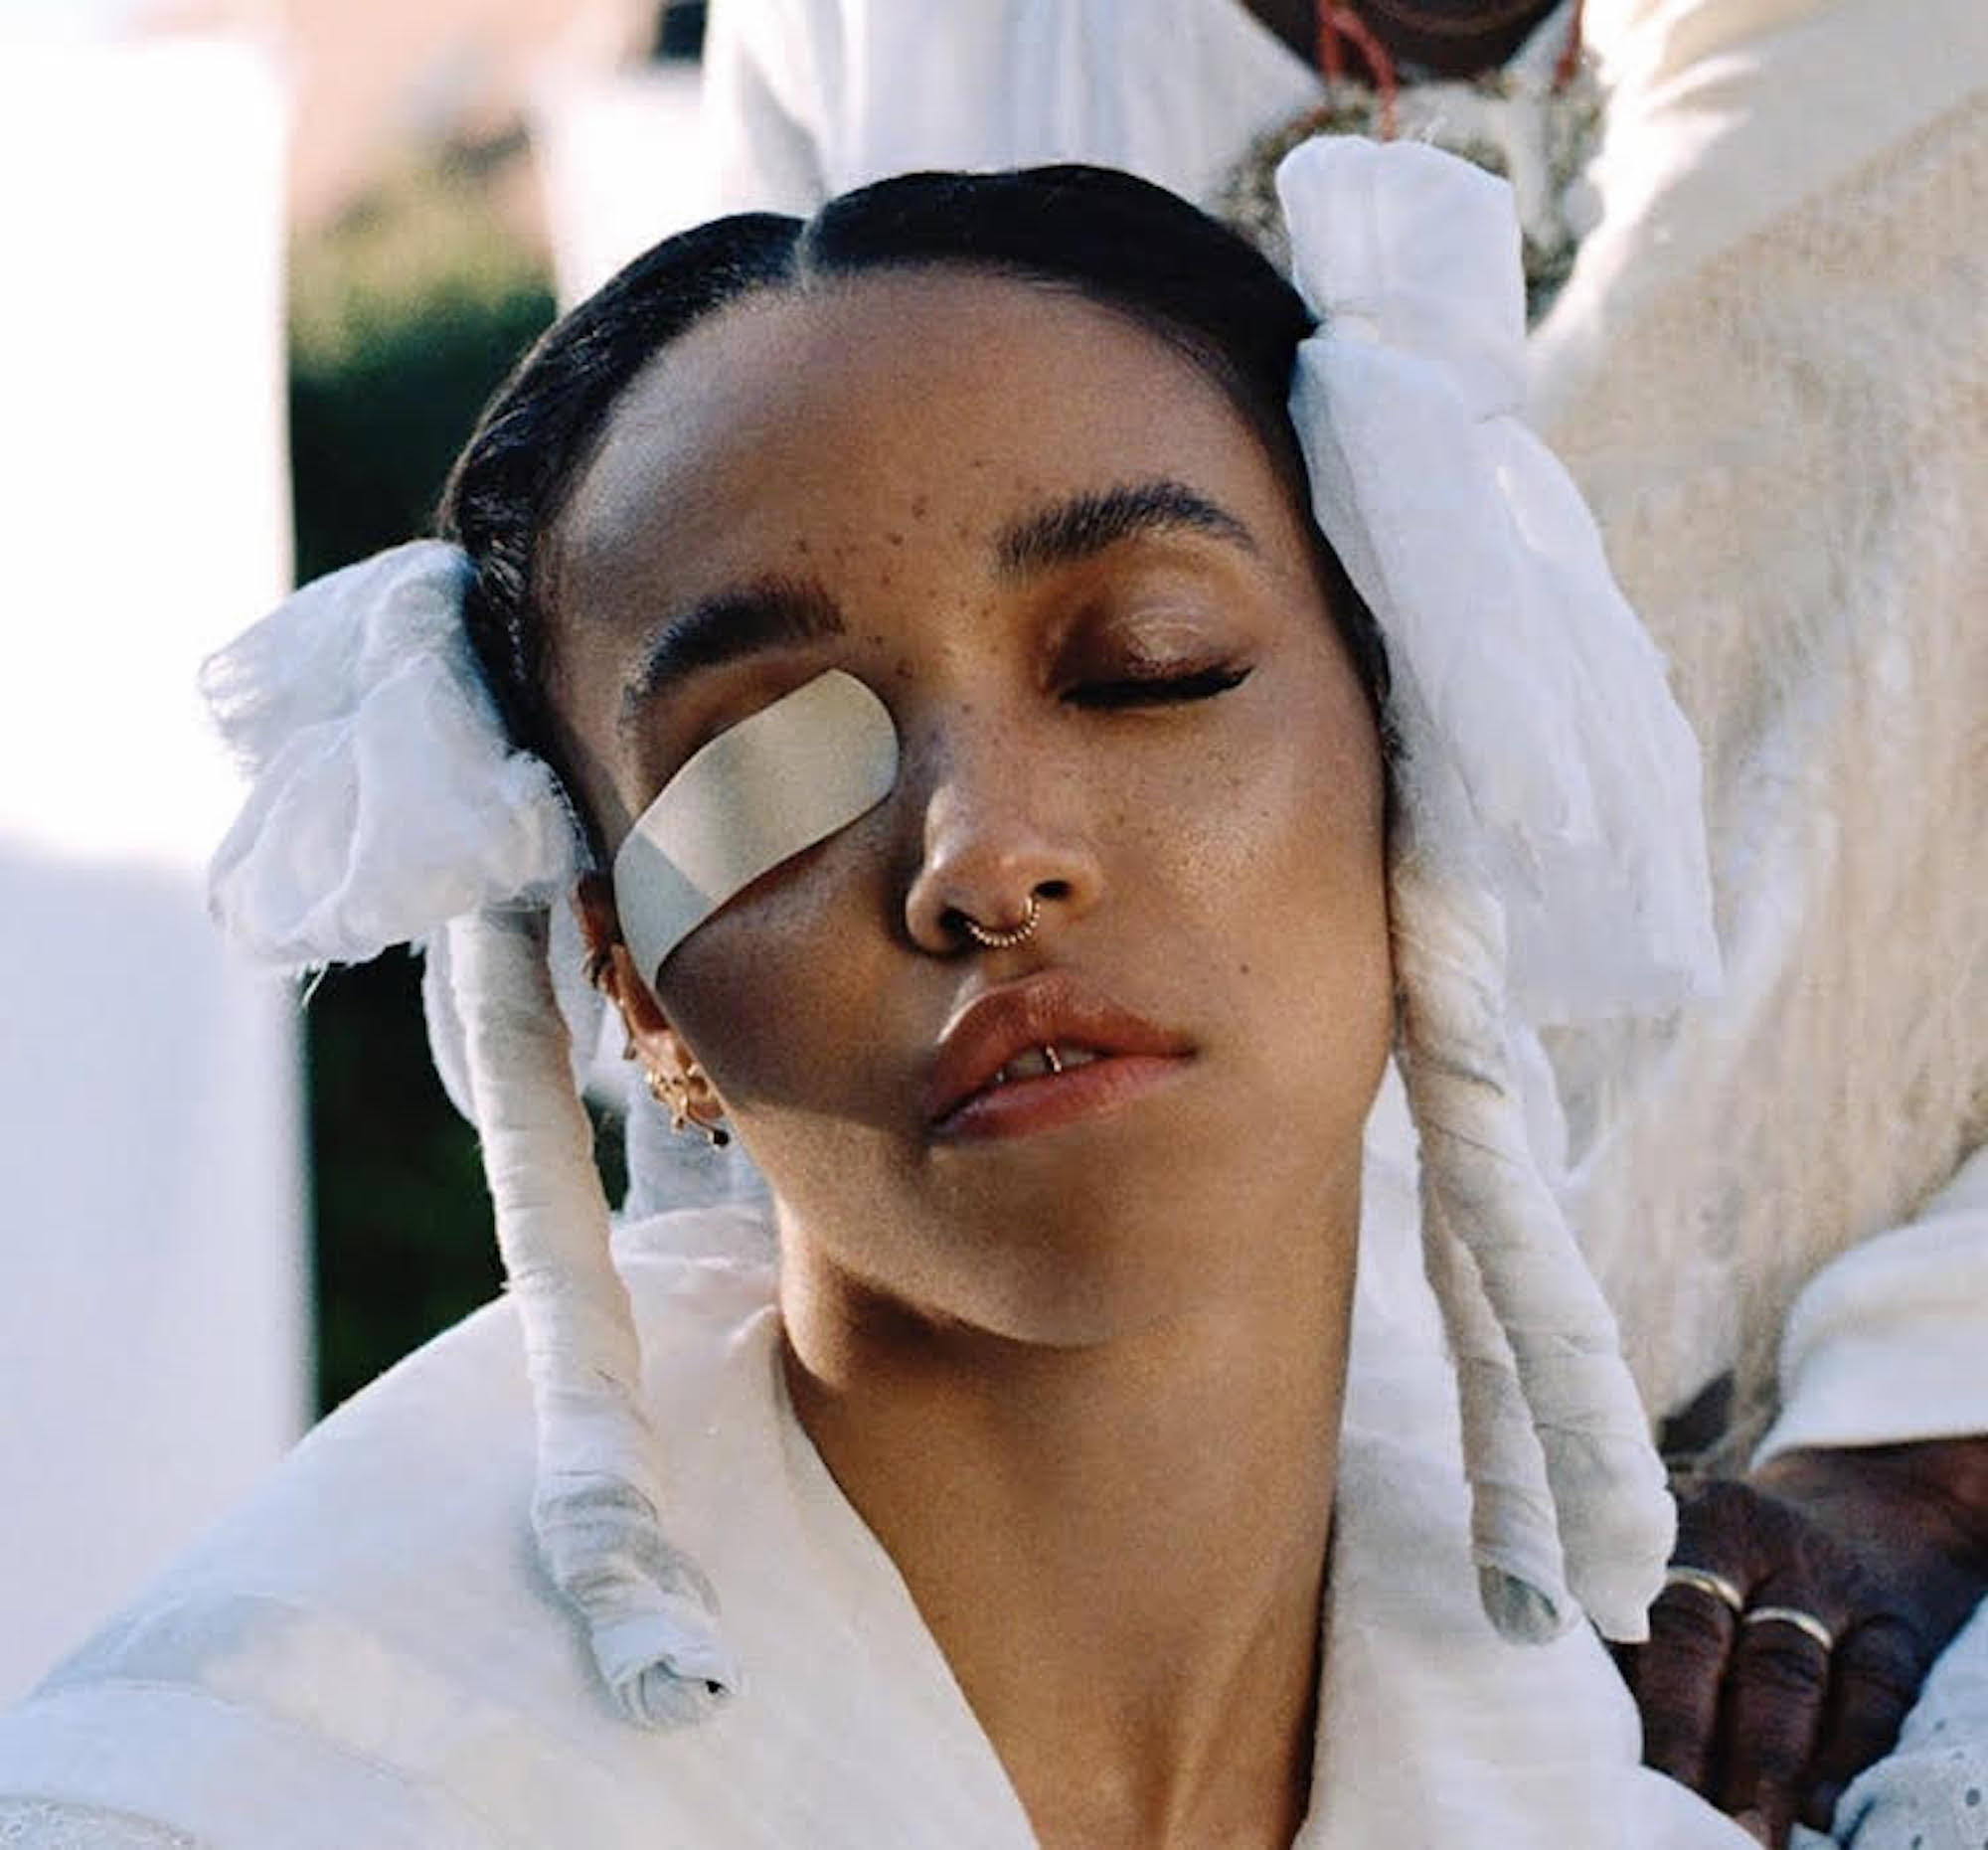 Wonderland FKA Twigs new music video